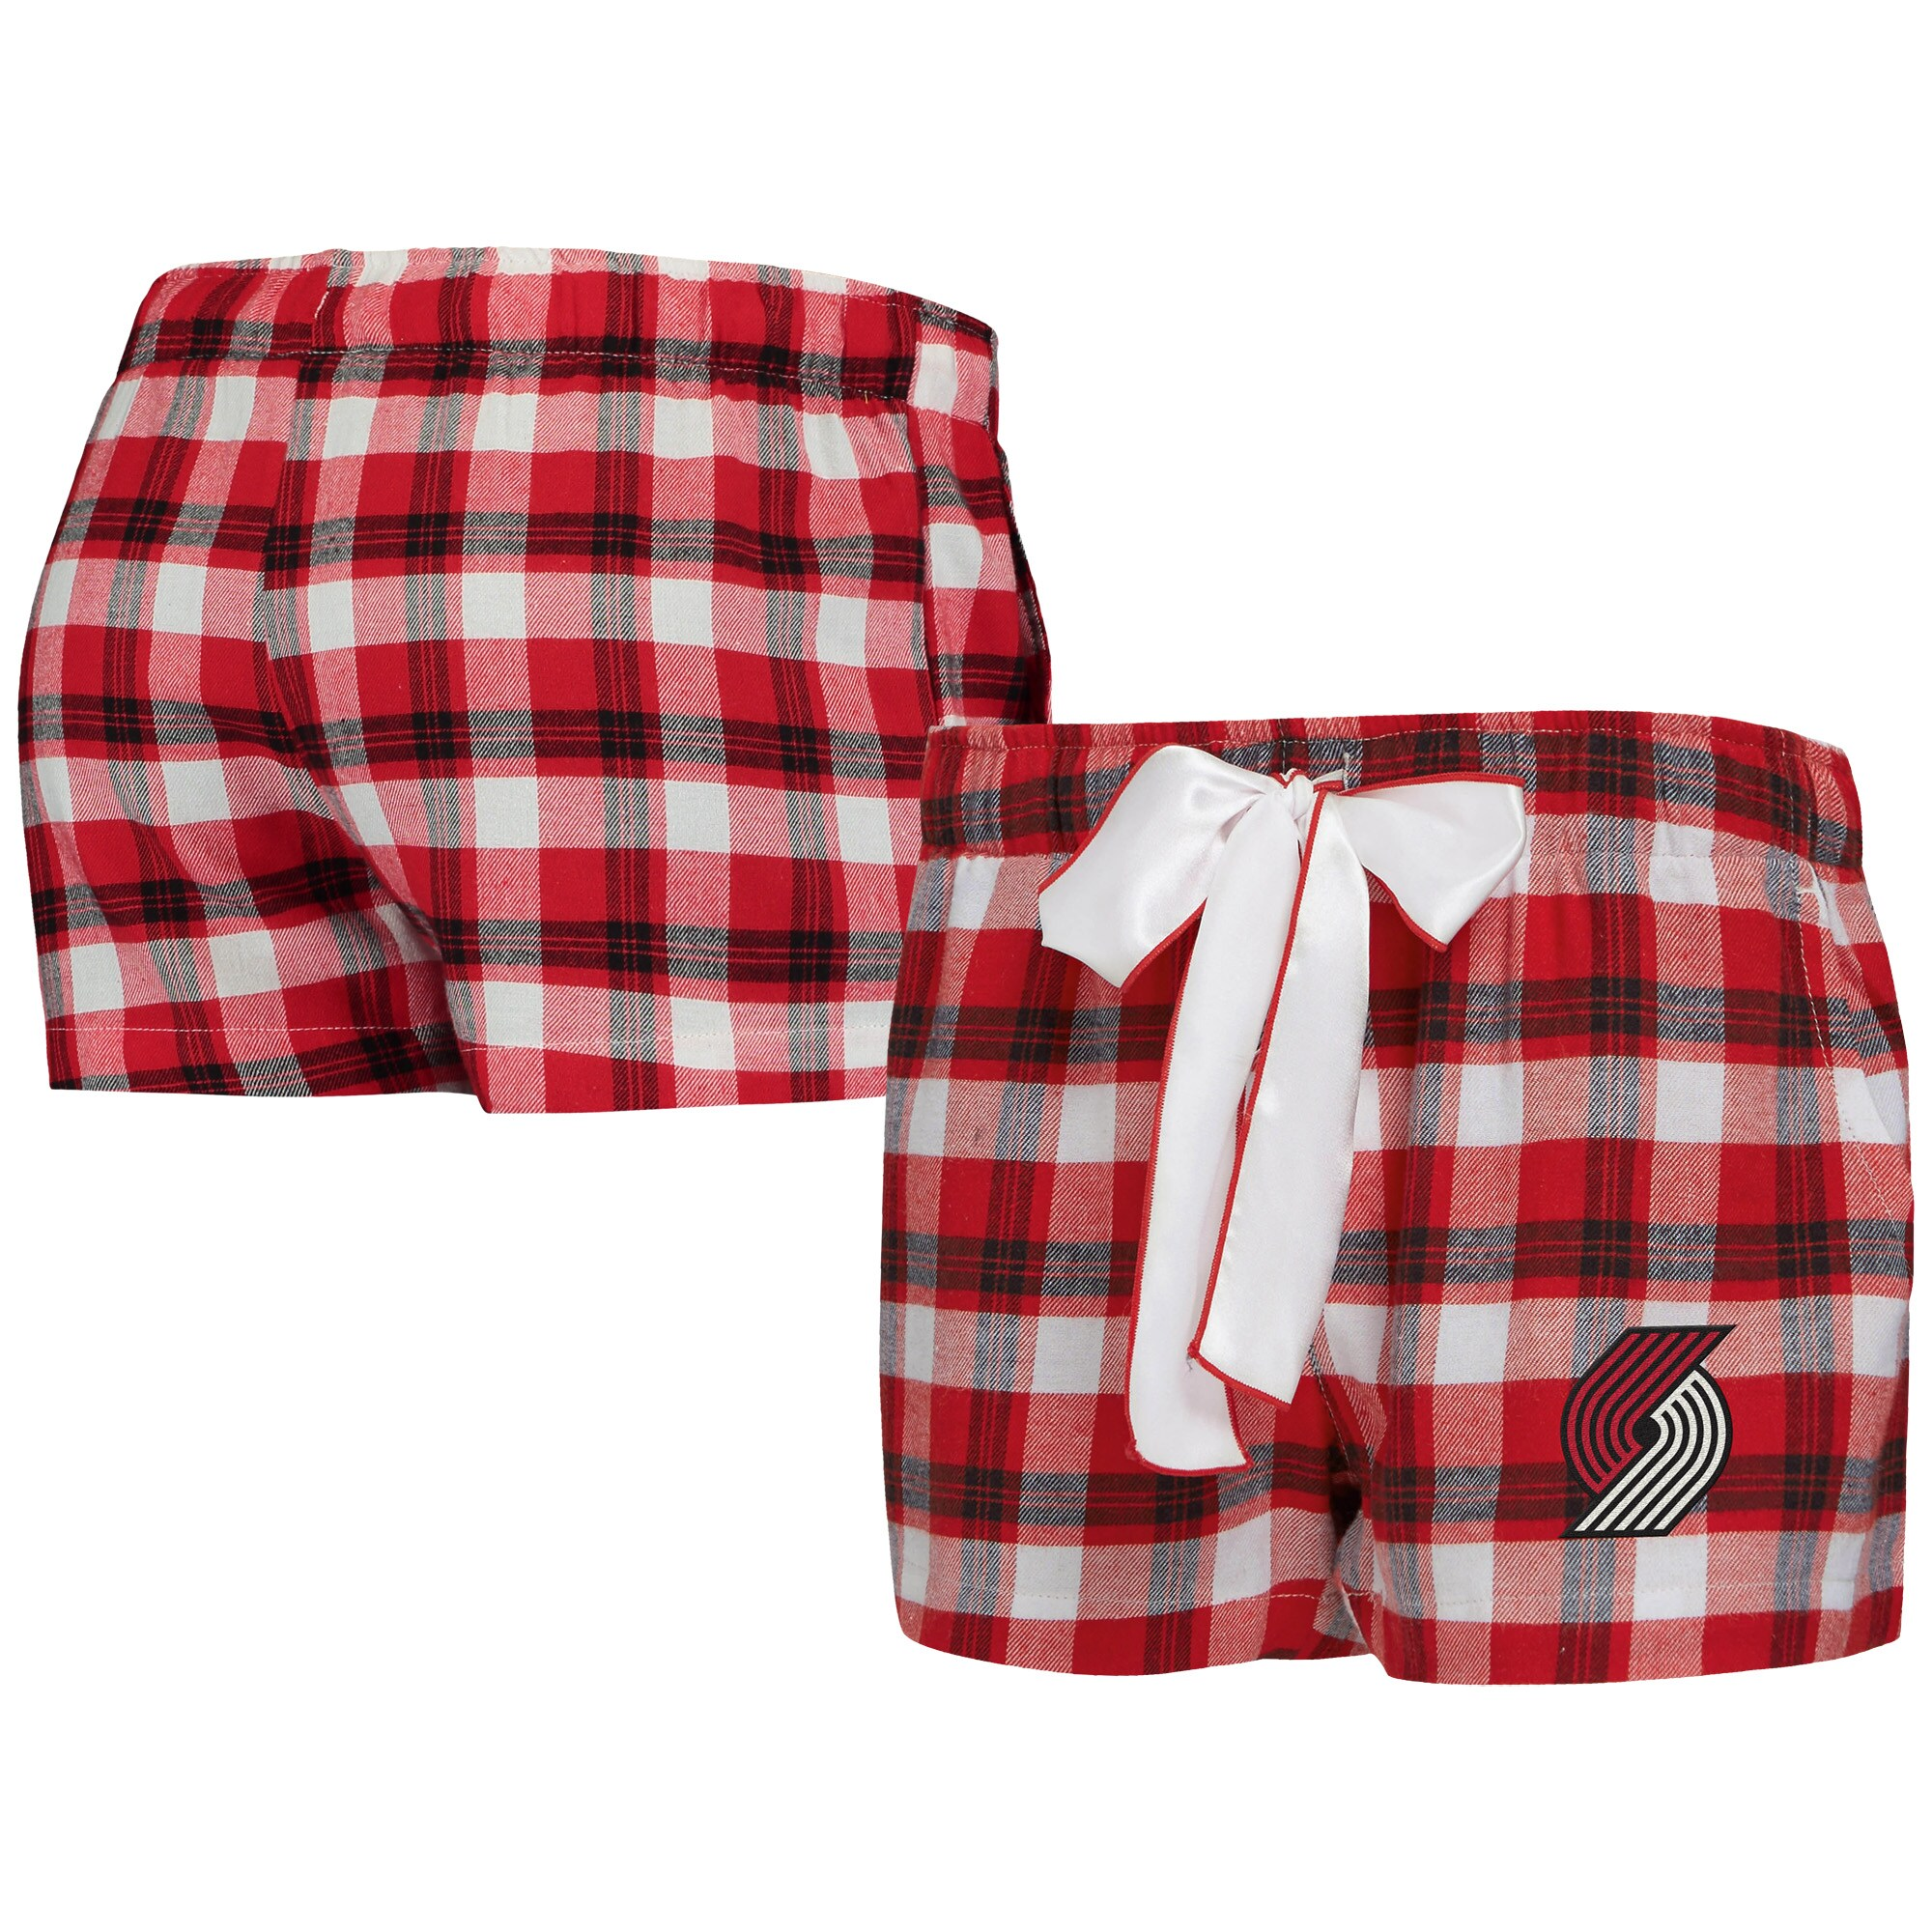 Portland Trail Blazers Concepts Sport Women's Piedmont Flannel Sleep Shorts - Red/Black